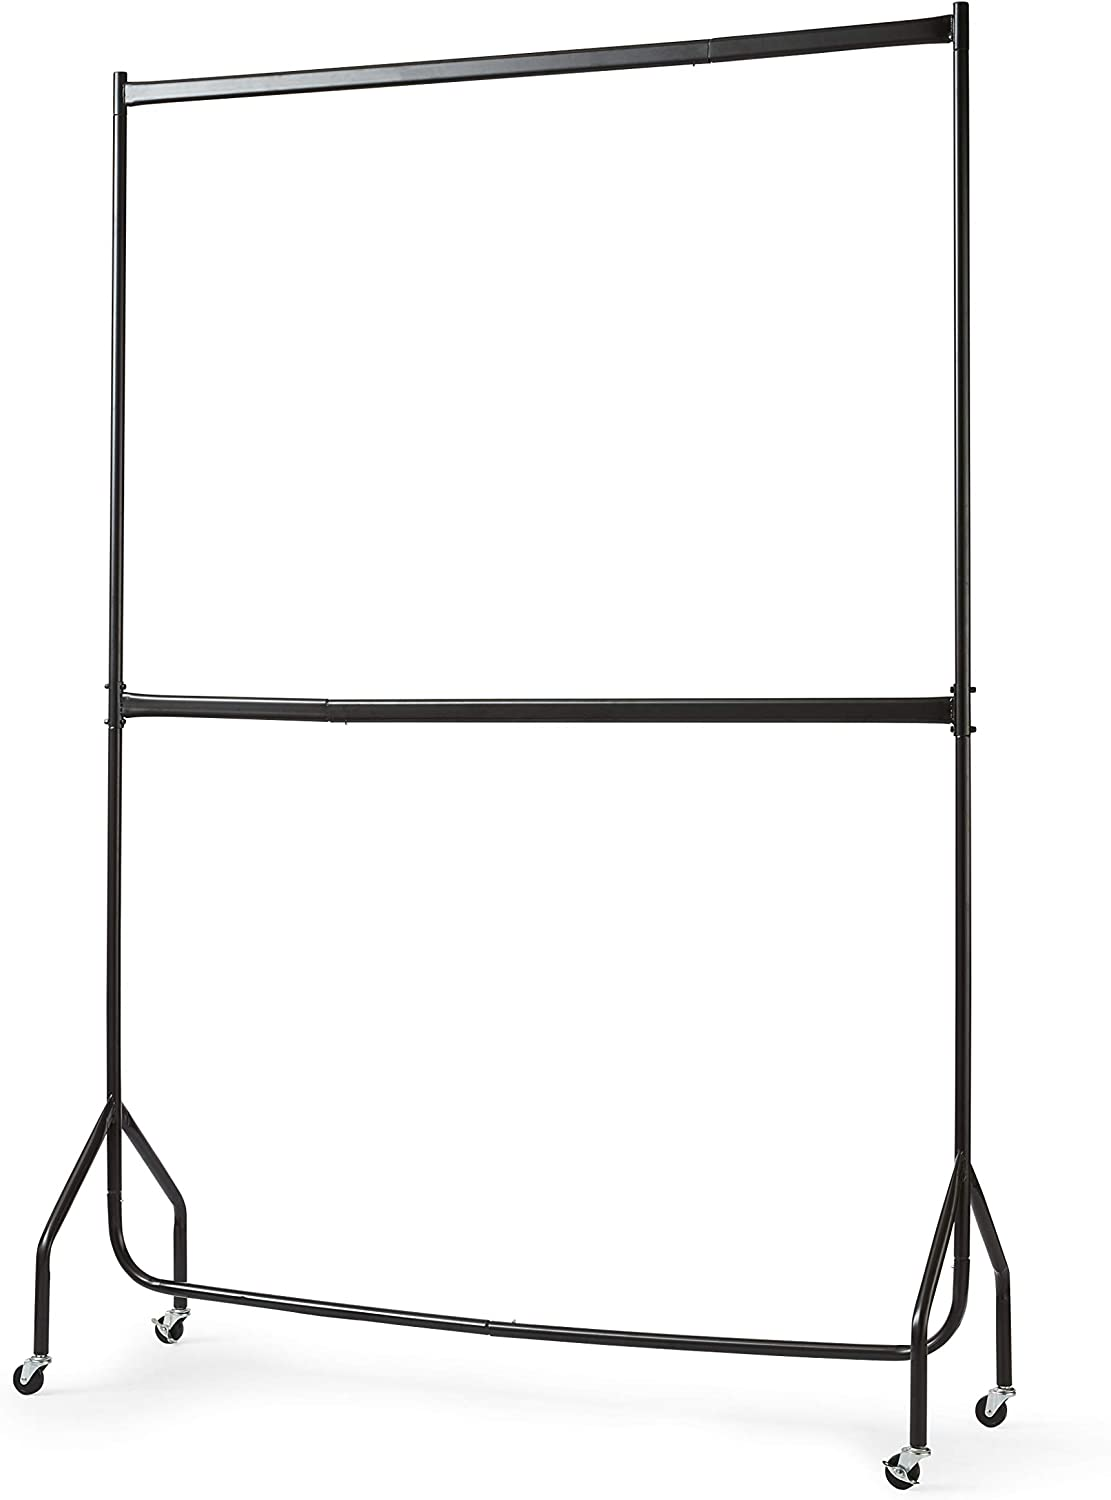 Direct Online Houseware Two Tier Heavy Duty Clothes Rail Garment Hanging Rack In Black 4ft Long x 7ft Tall